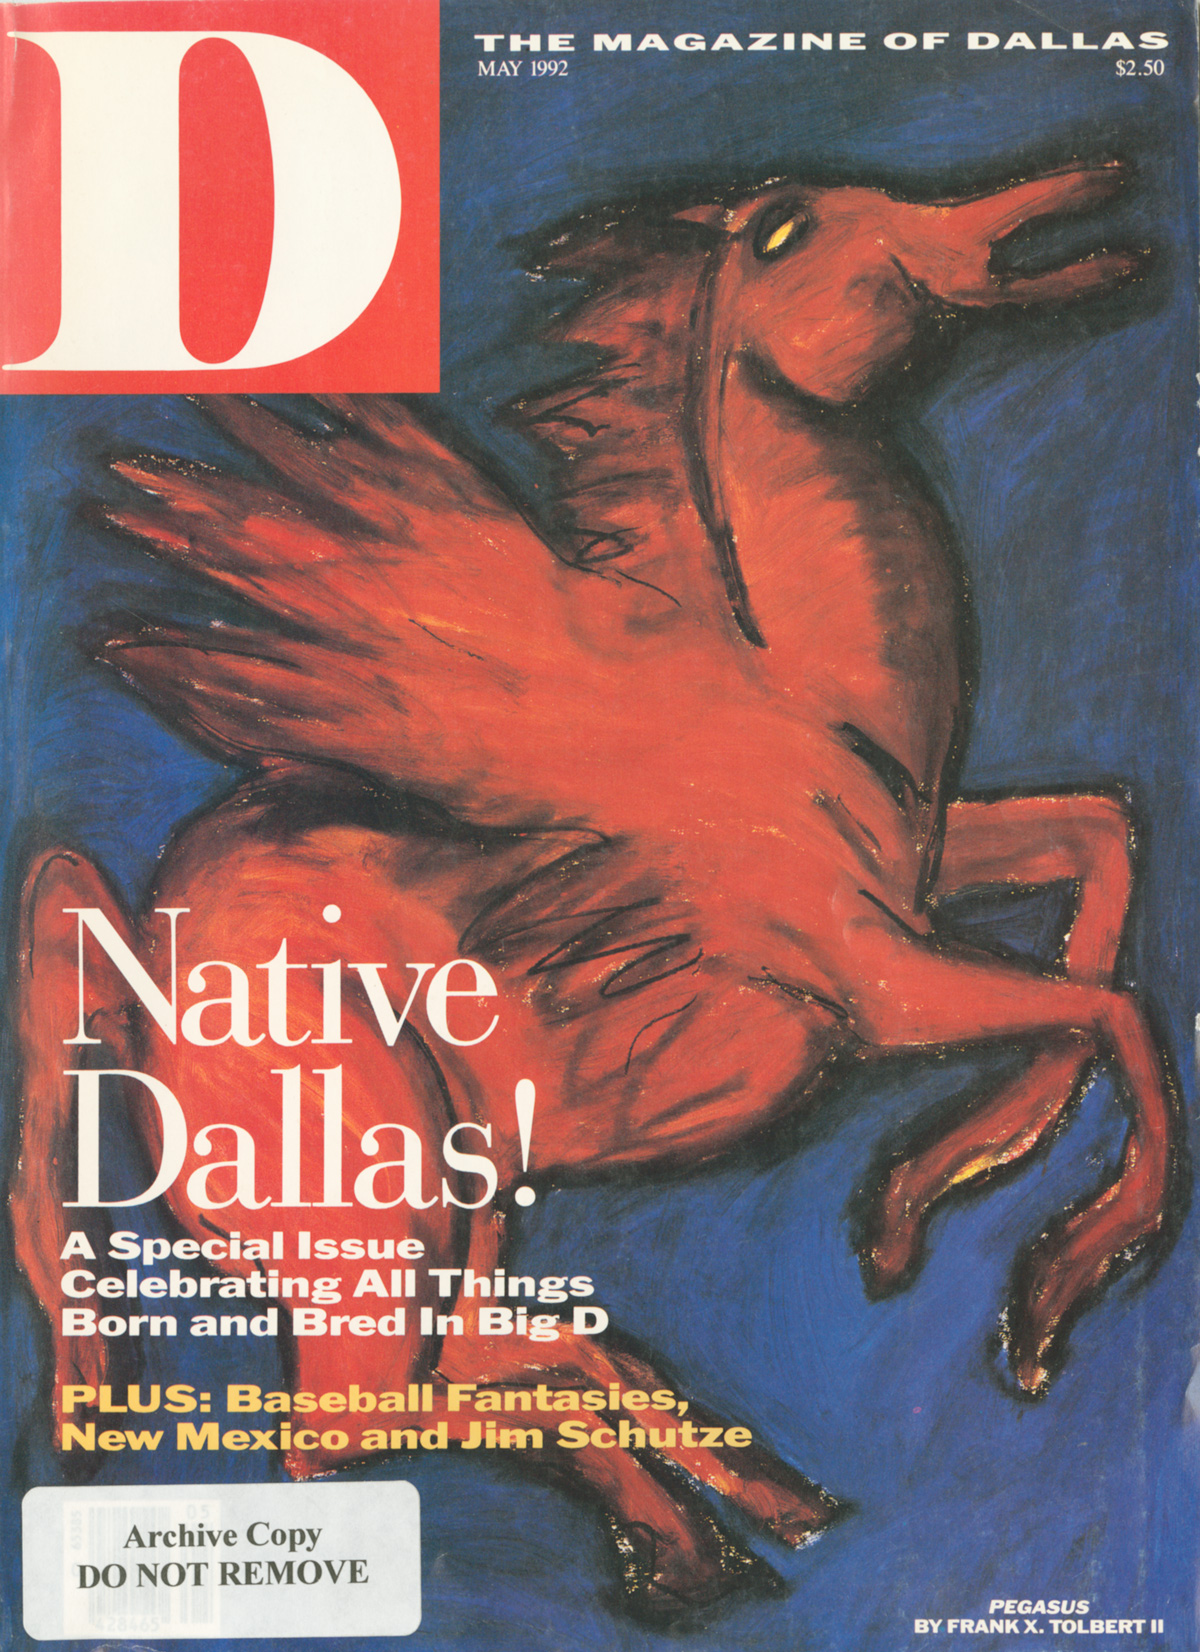 May 1992 cover